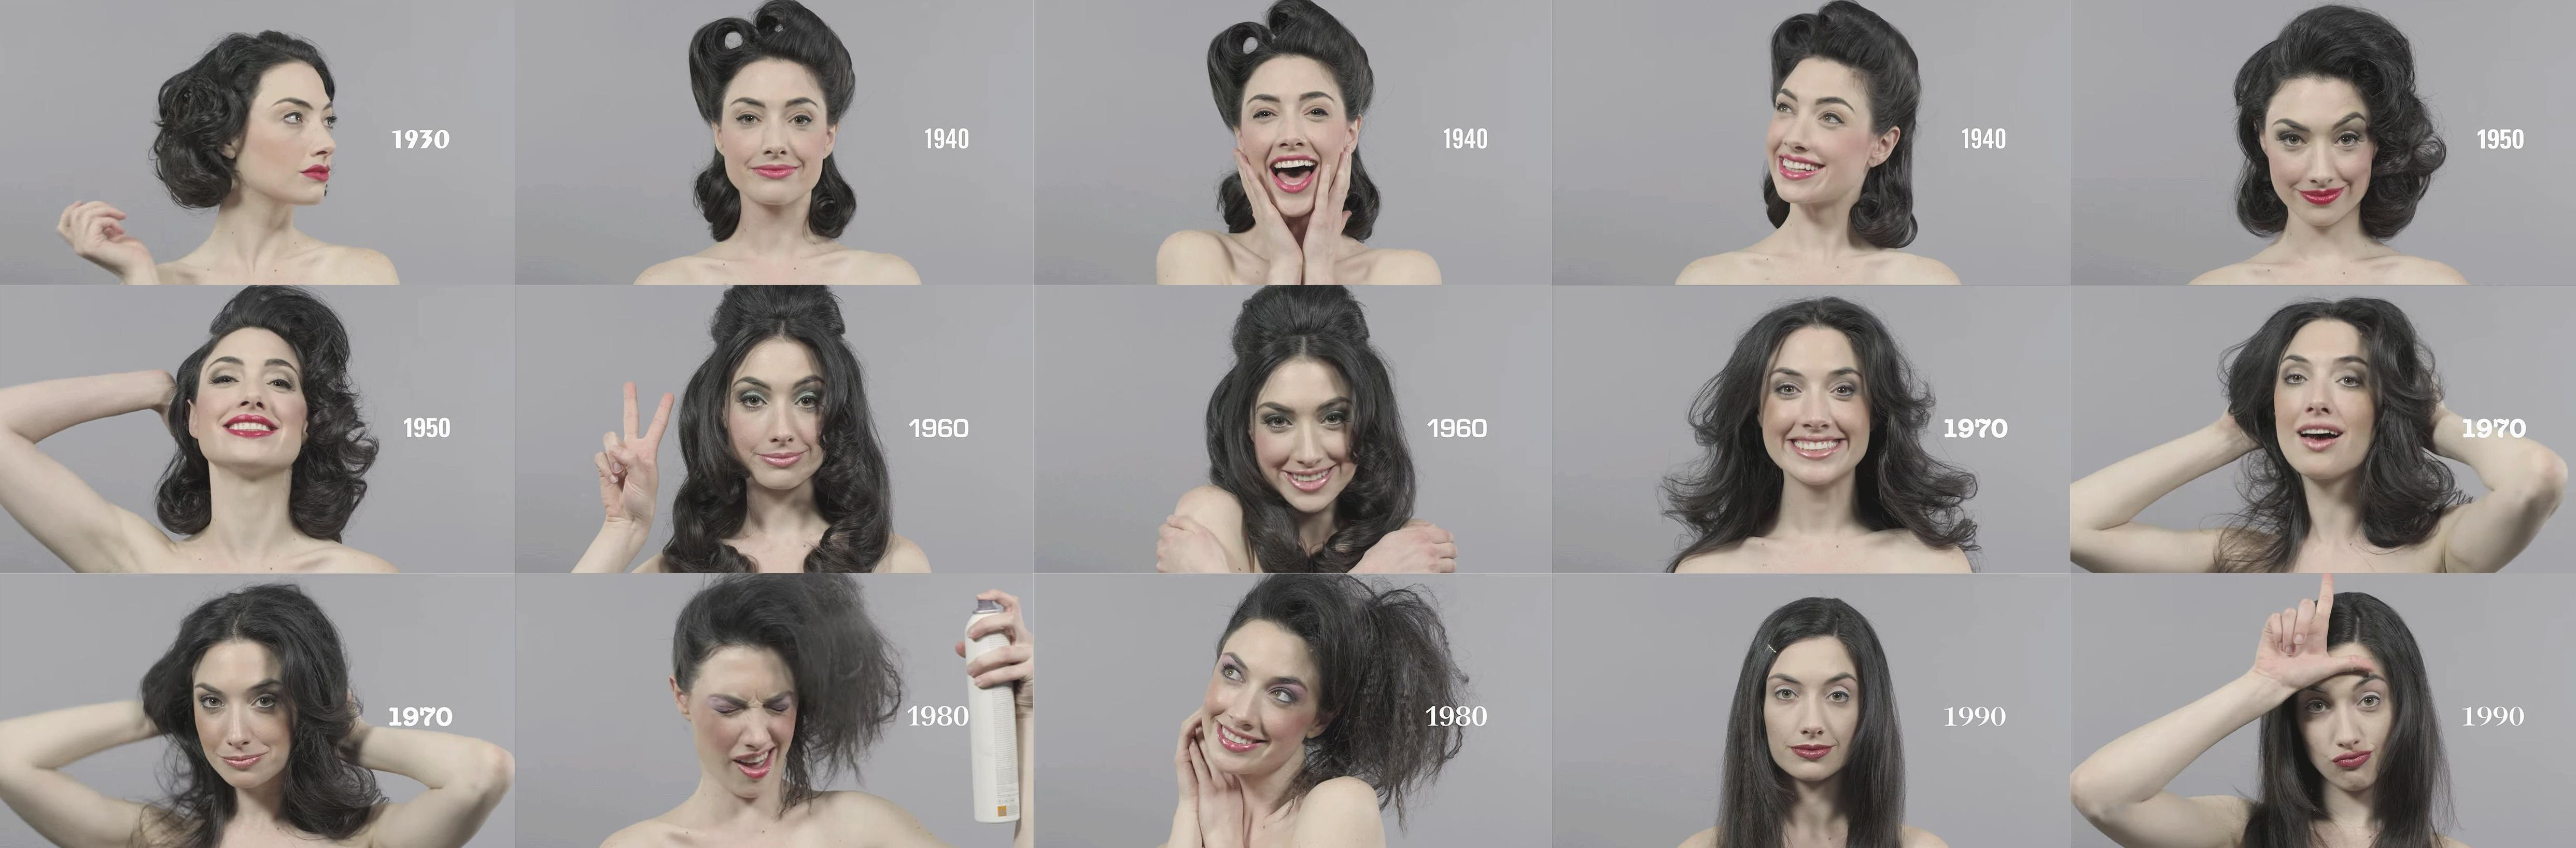 100 years of beuty